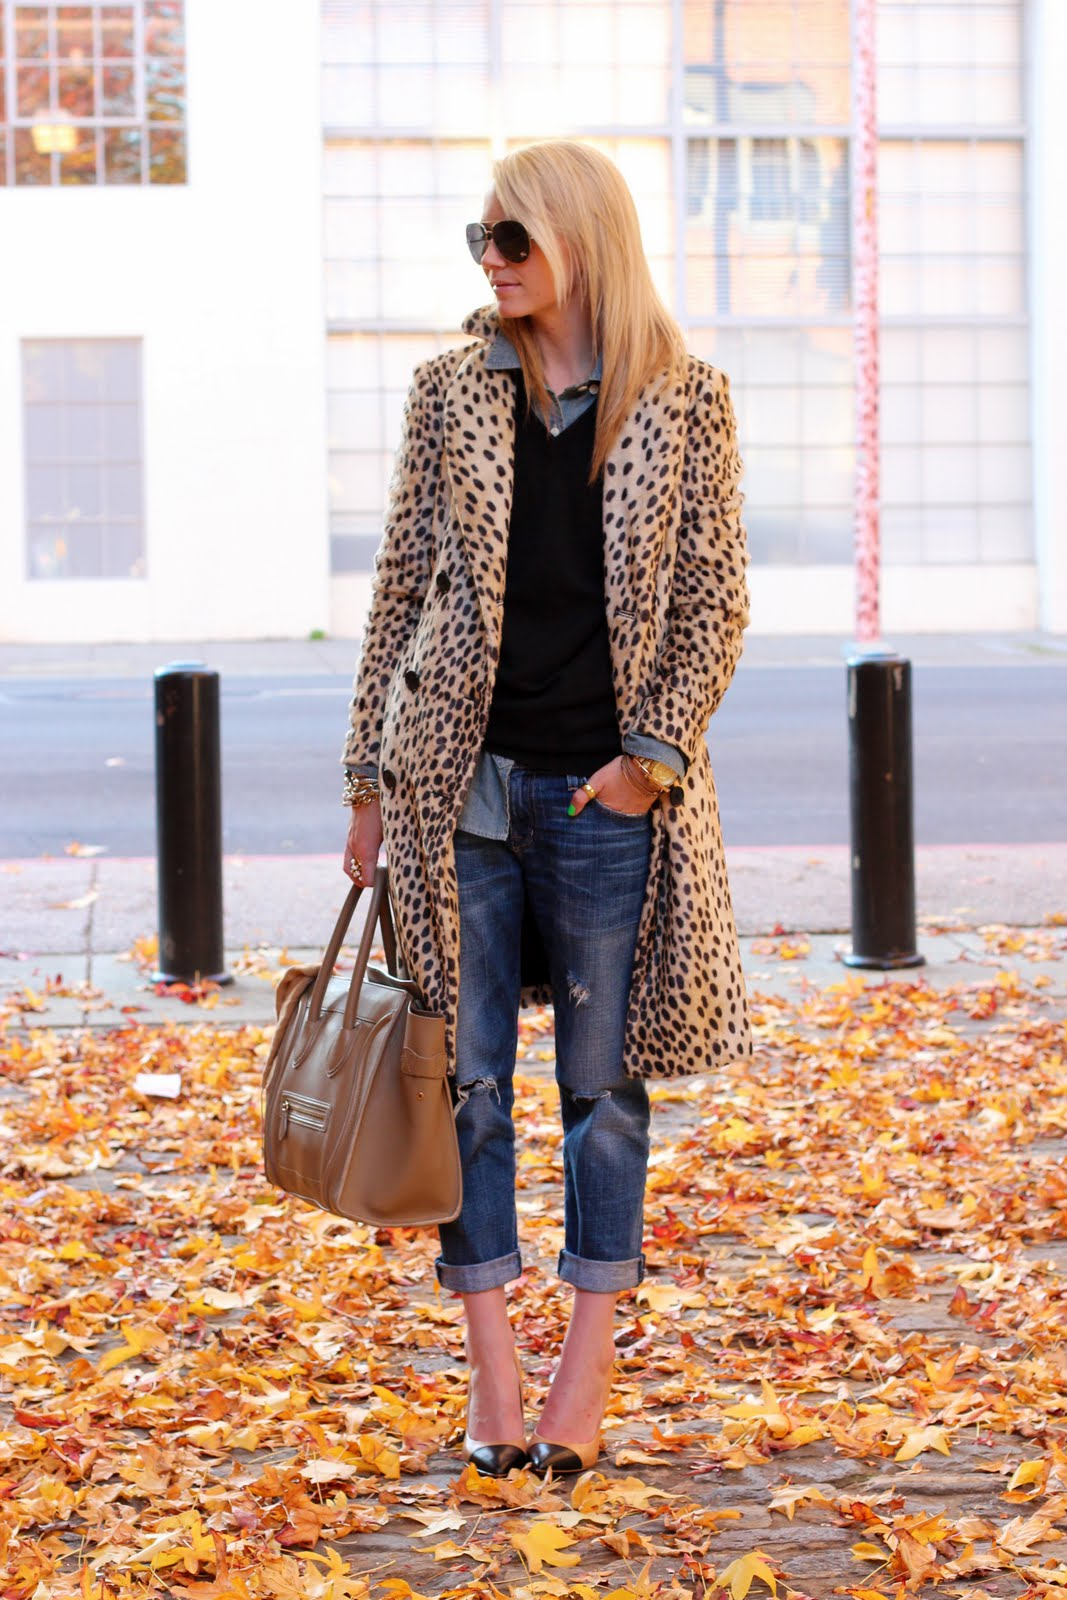 You searched for: leopard print jacket! Etsy is the home to thousands of handmade, vintage, and one-of-a-kind products and gifts related to your search. No matter what you're looking for or where you are in the world, our global marketplace of sellers can help you .